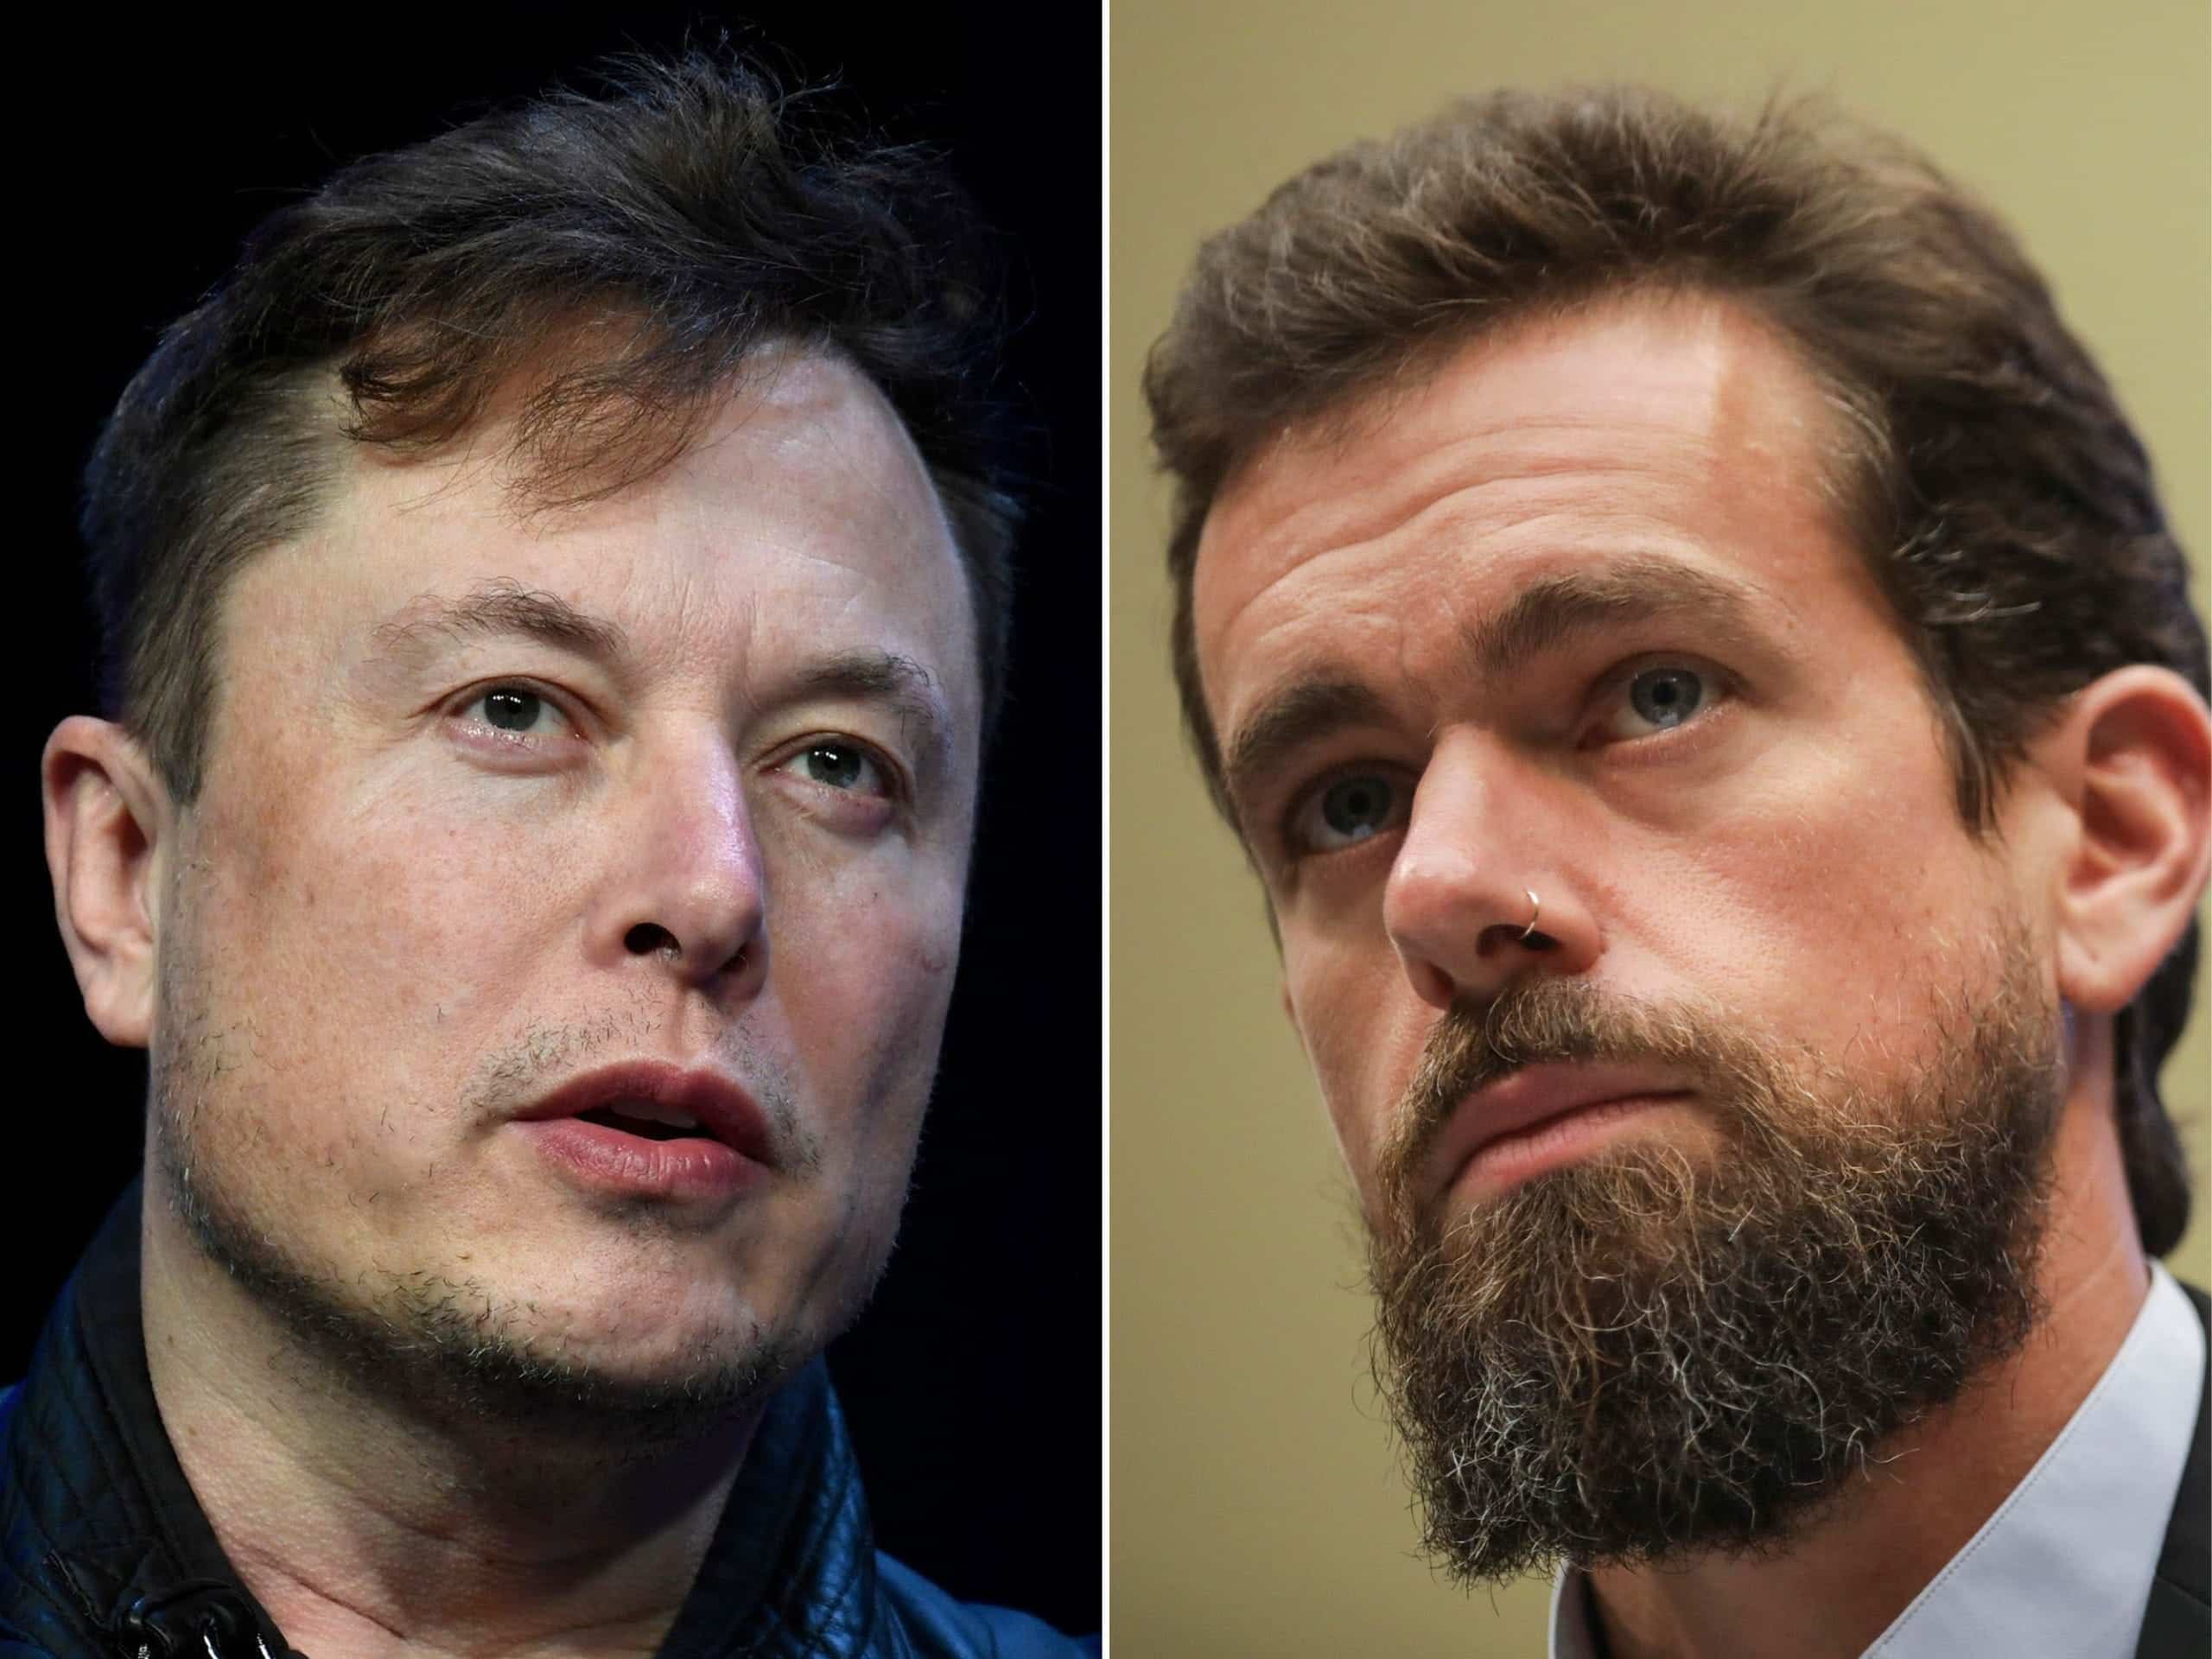 Will Elon Musk Take the Jack Dorsey Challenge to Discuss Bitcoin Adoption by Institutions?